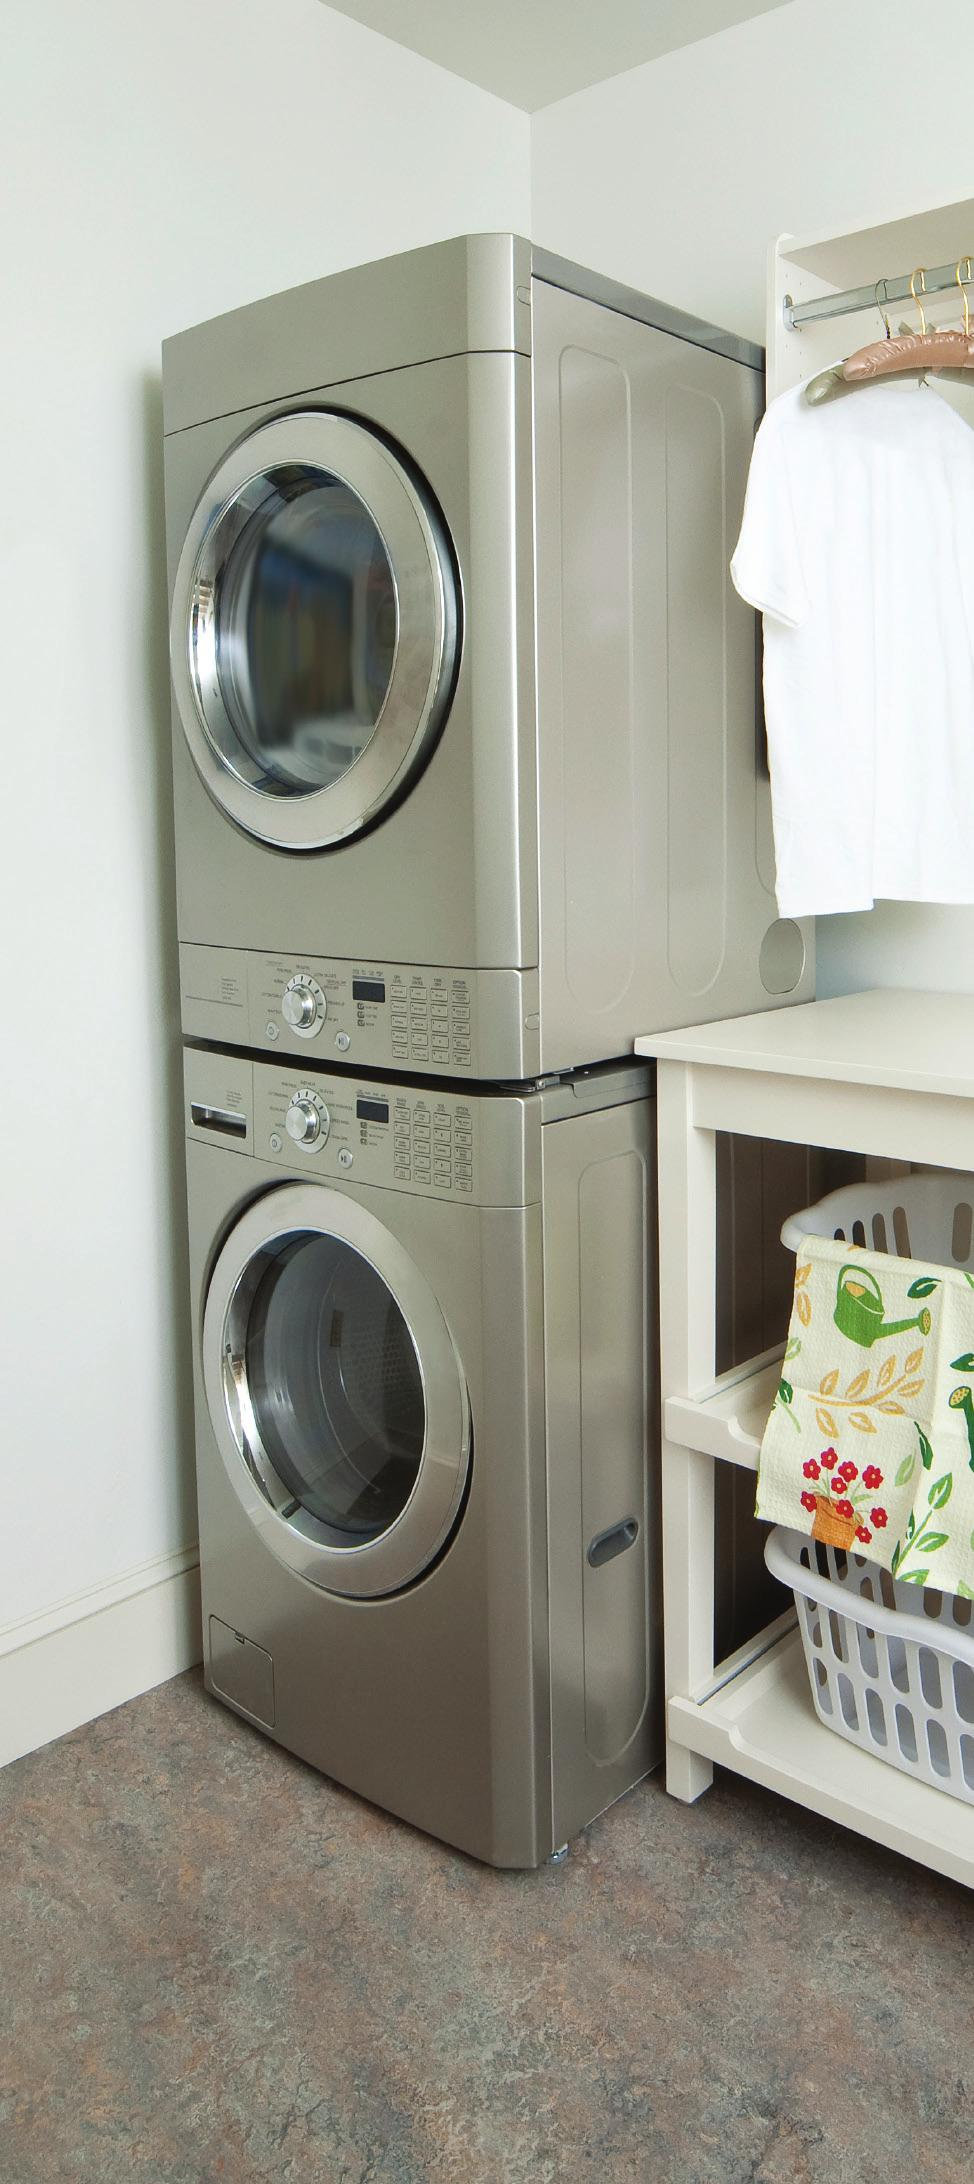 SAVING ENERGY AROUND THE Utility Room A BETTER LAUNDRY LIST Whether you re washing, drying or ironing, these tips will help you use electricity as efficiently as possible and reduce your energy costs.